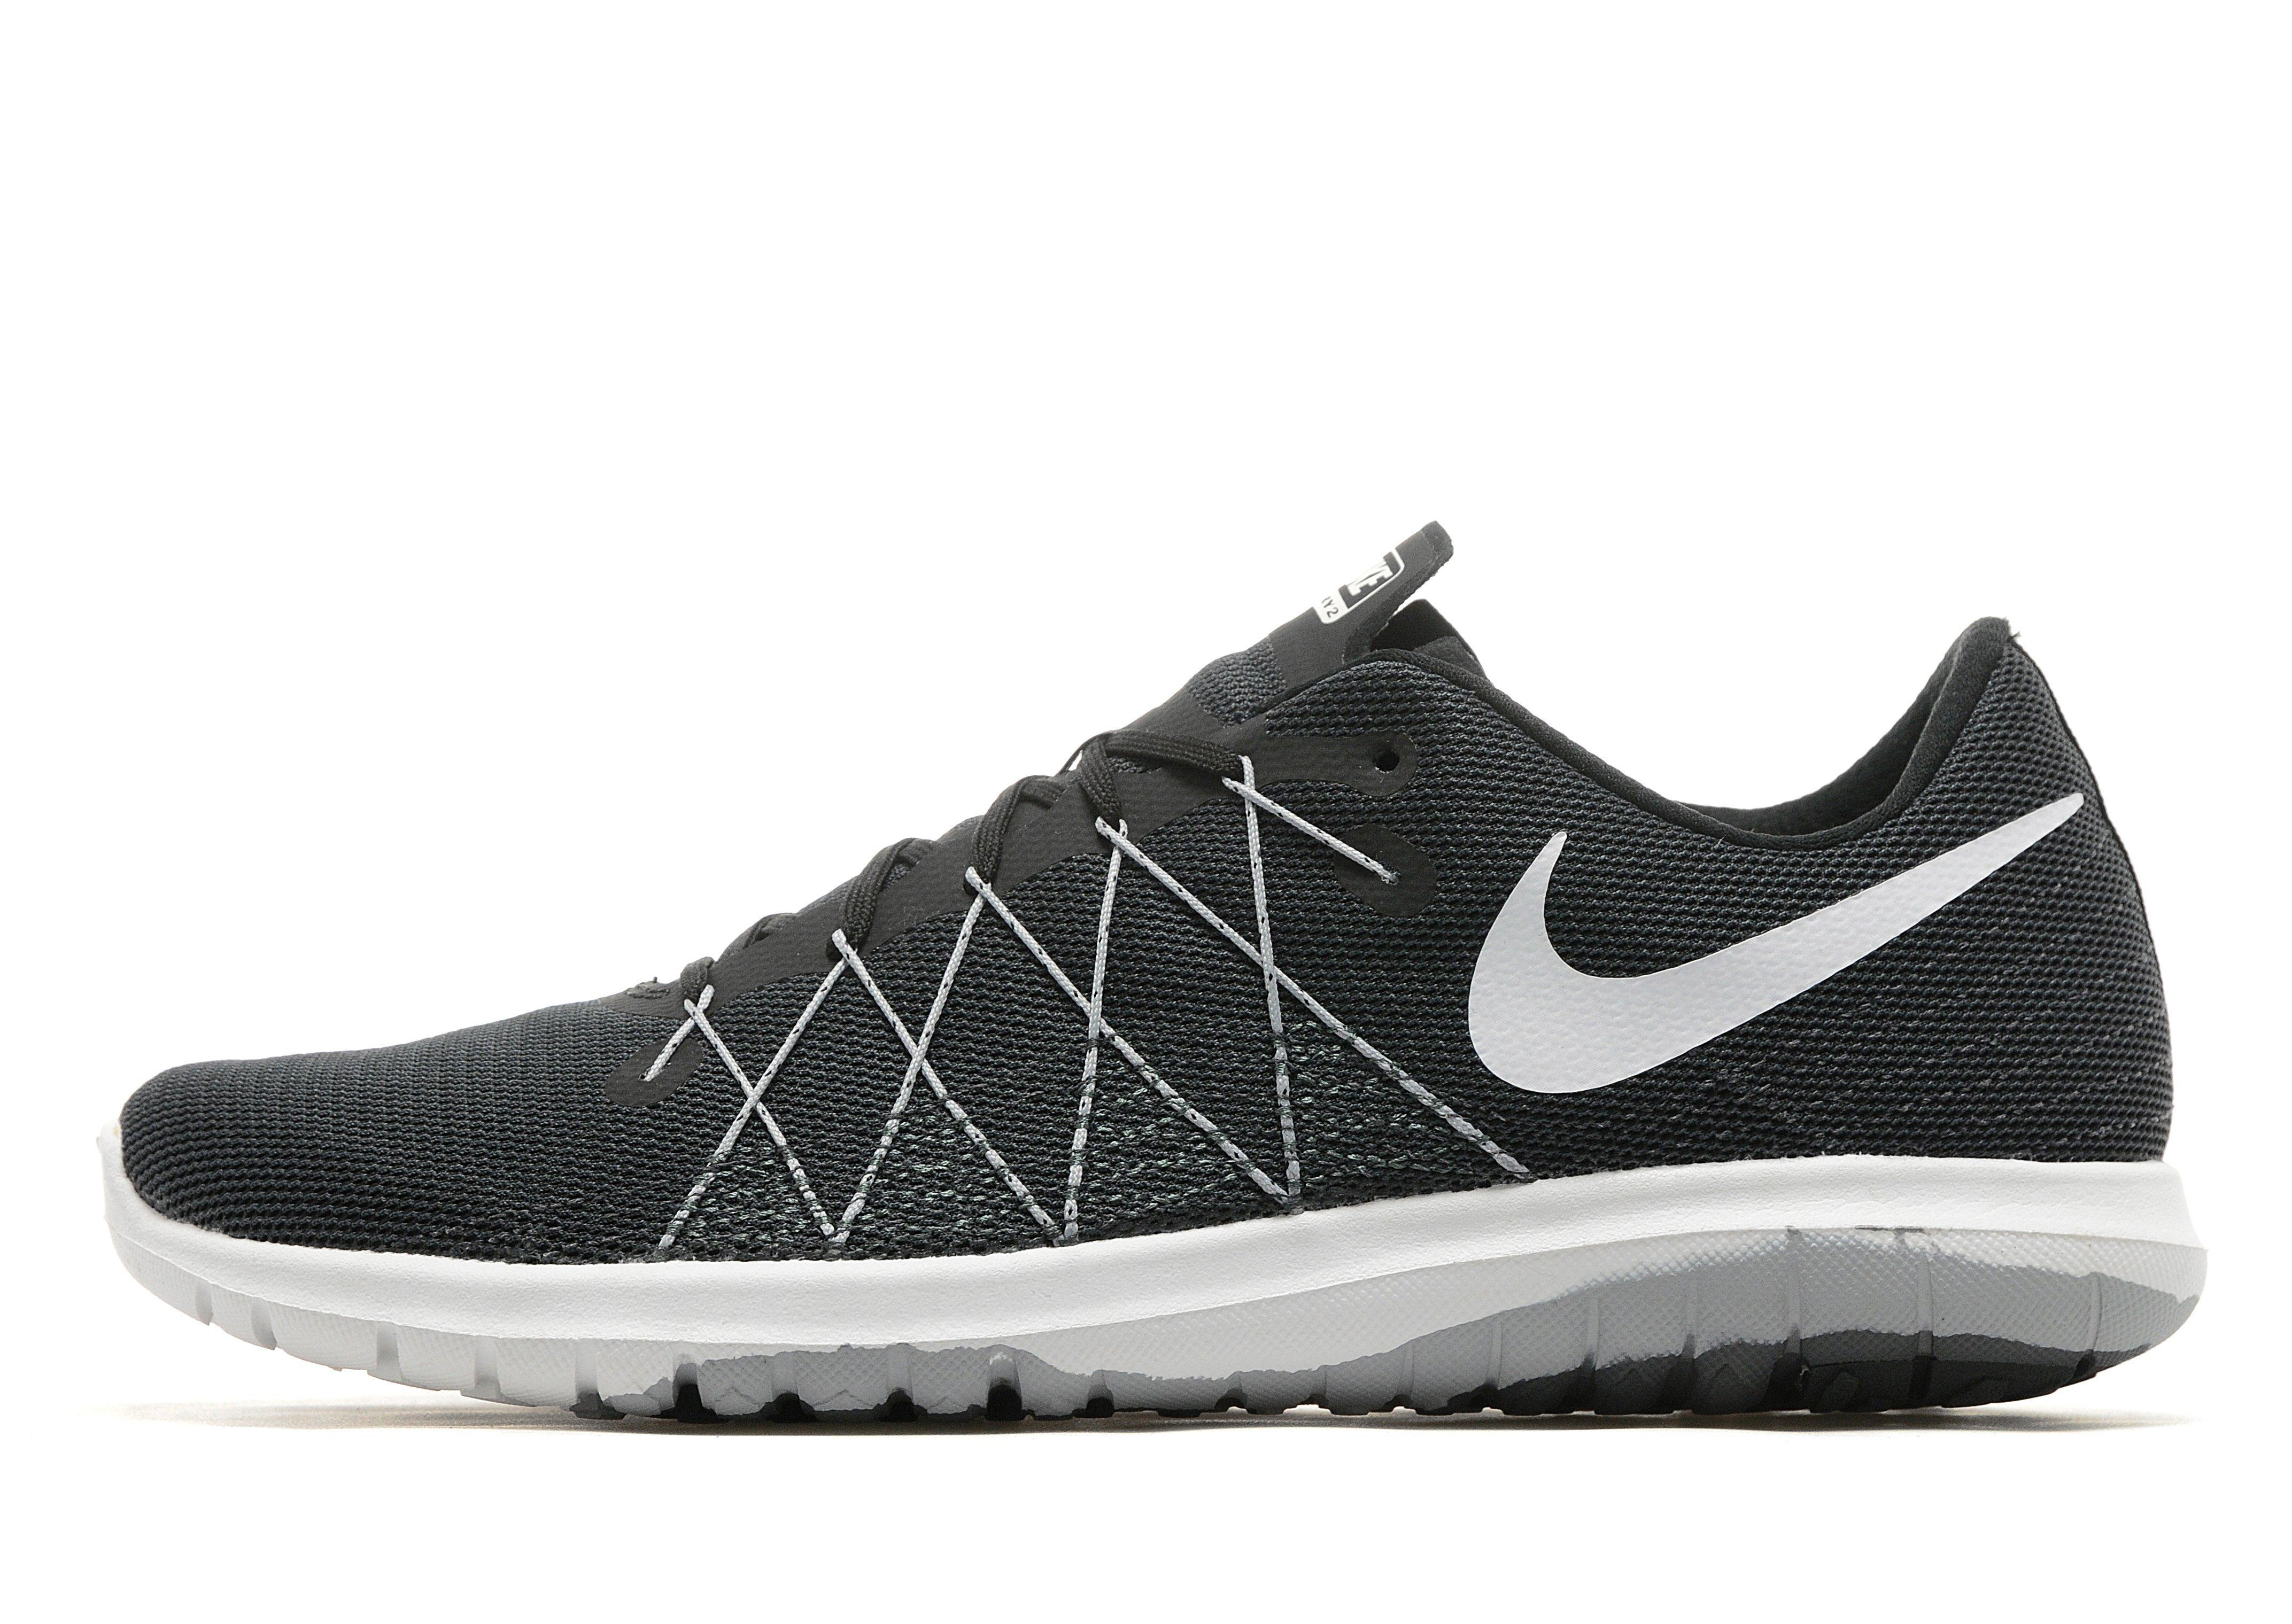 Most Cushioned Supportive Running Shoes